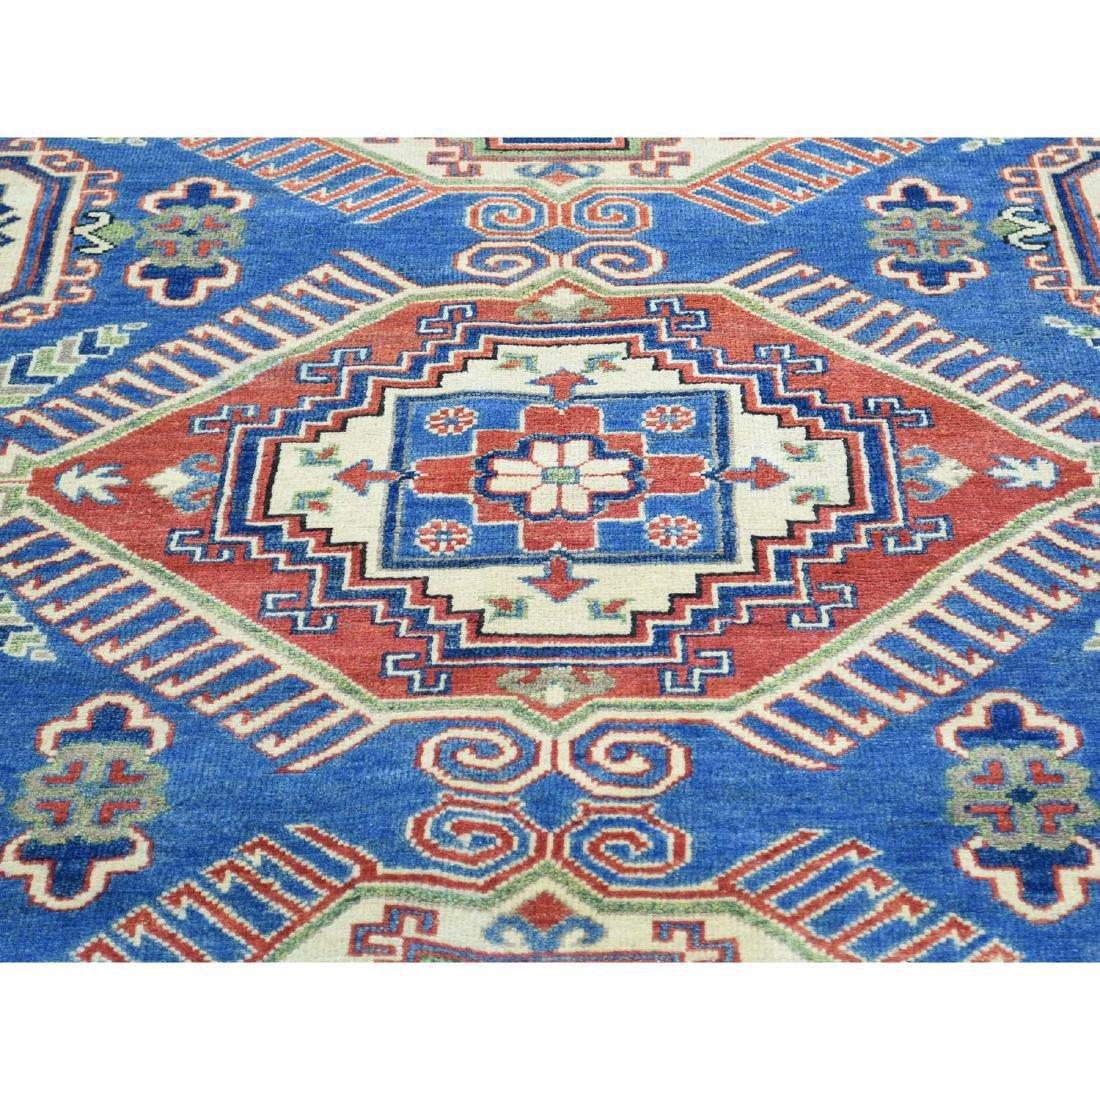 Hand-Knotted Tribal Design Kazak Pure Wool Rug 8.5x10 - 4